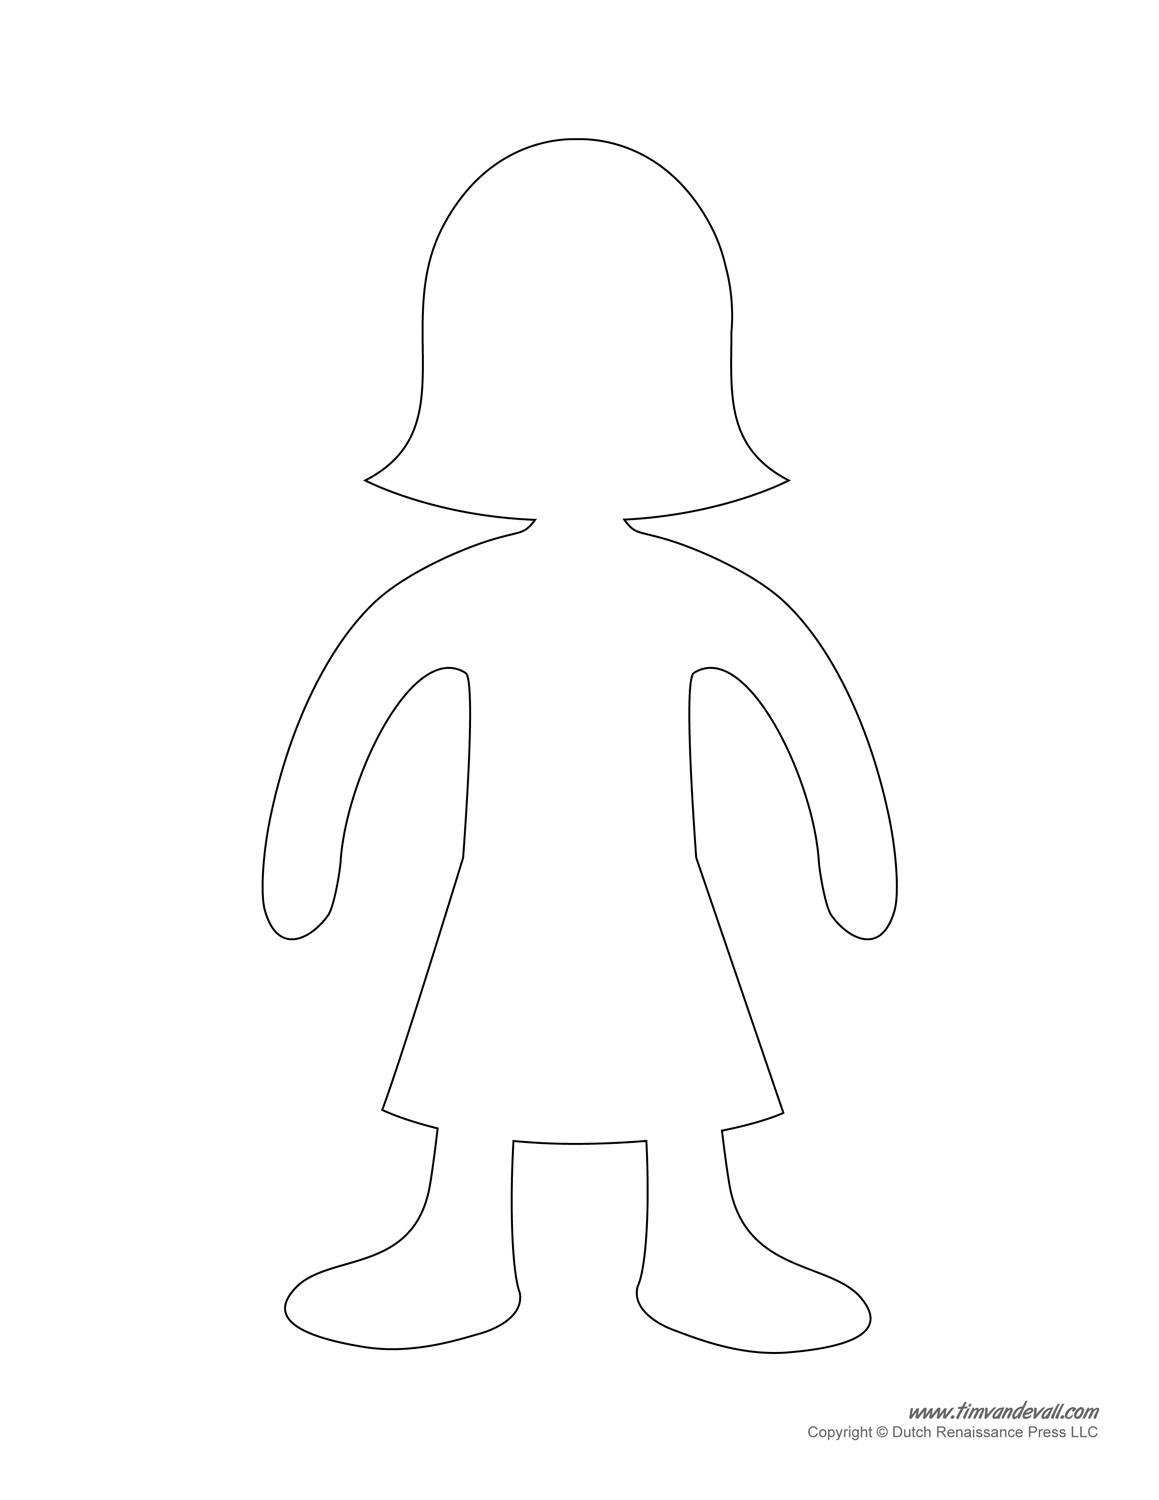 photograph relating to Printable Paper Dolls Templates called Printable Paper Doll Templates Crank out Your Personal Paper Dolls